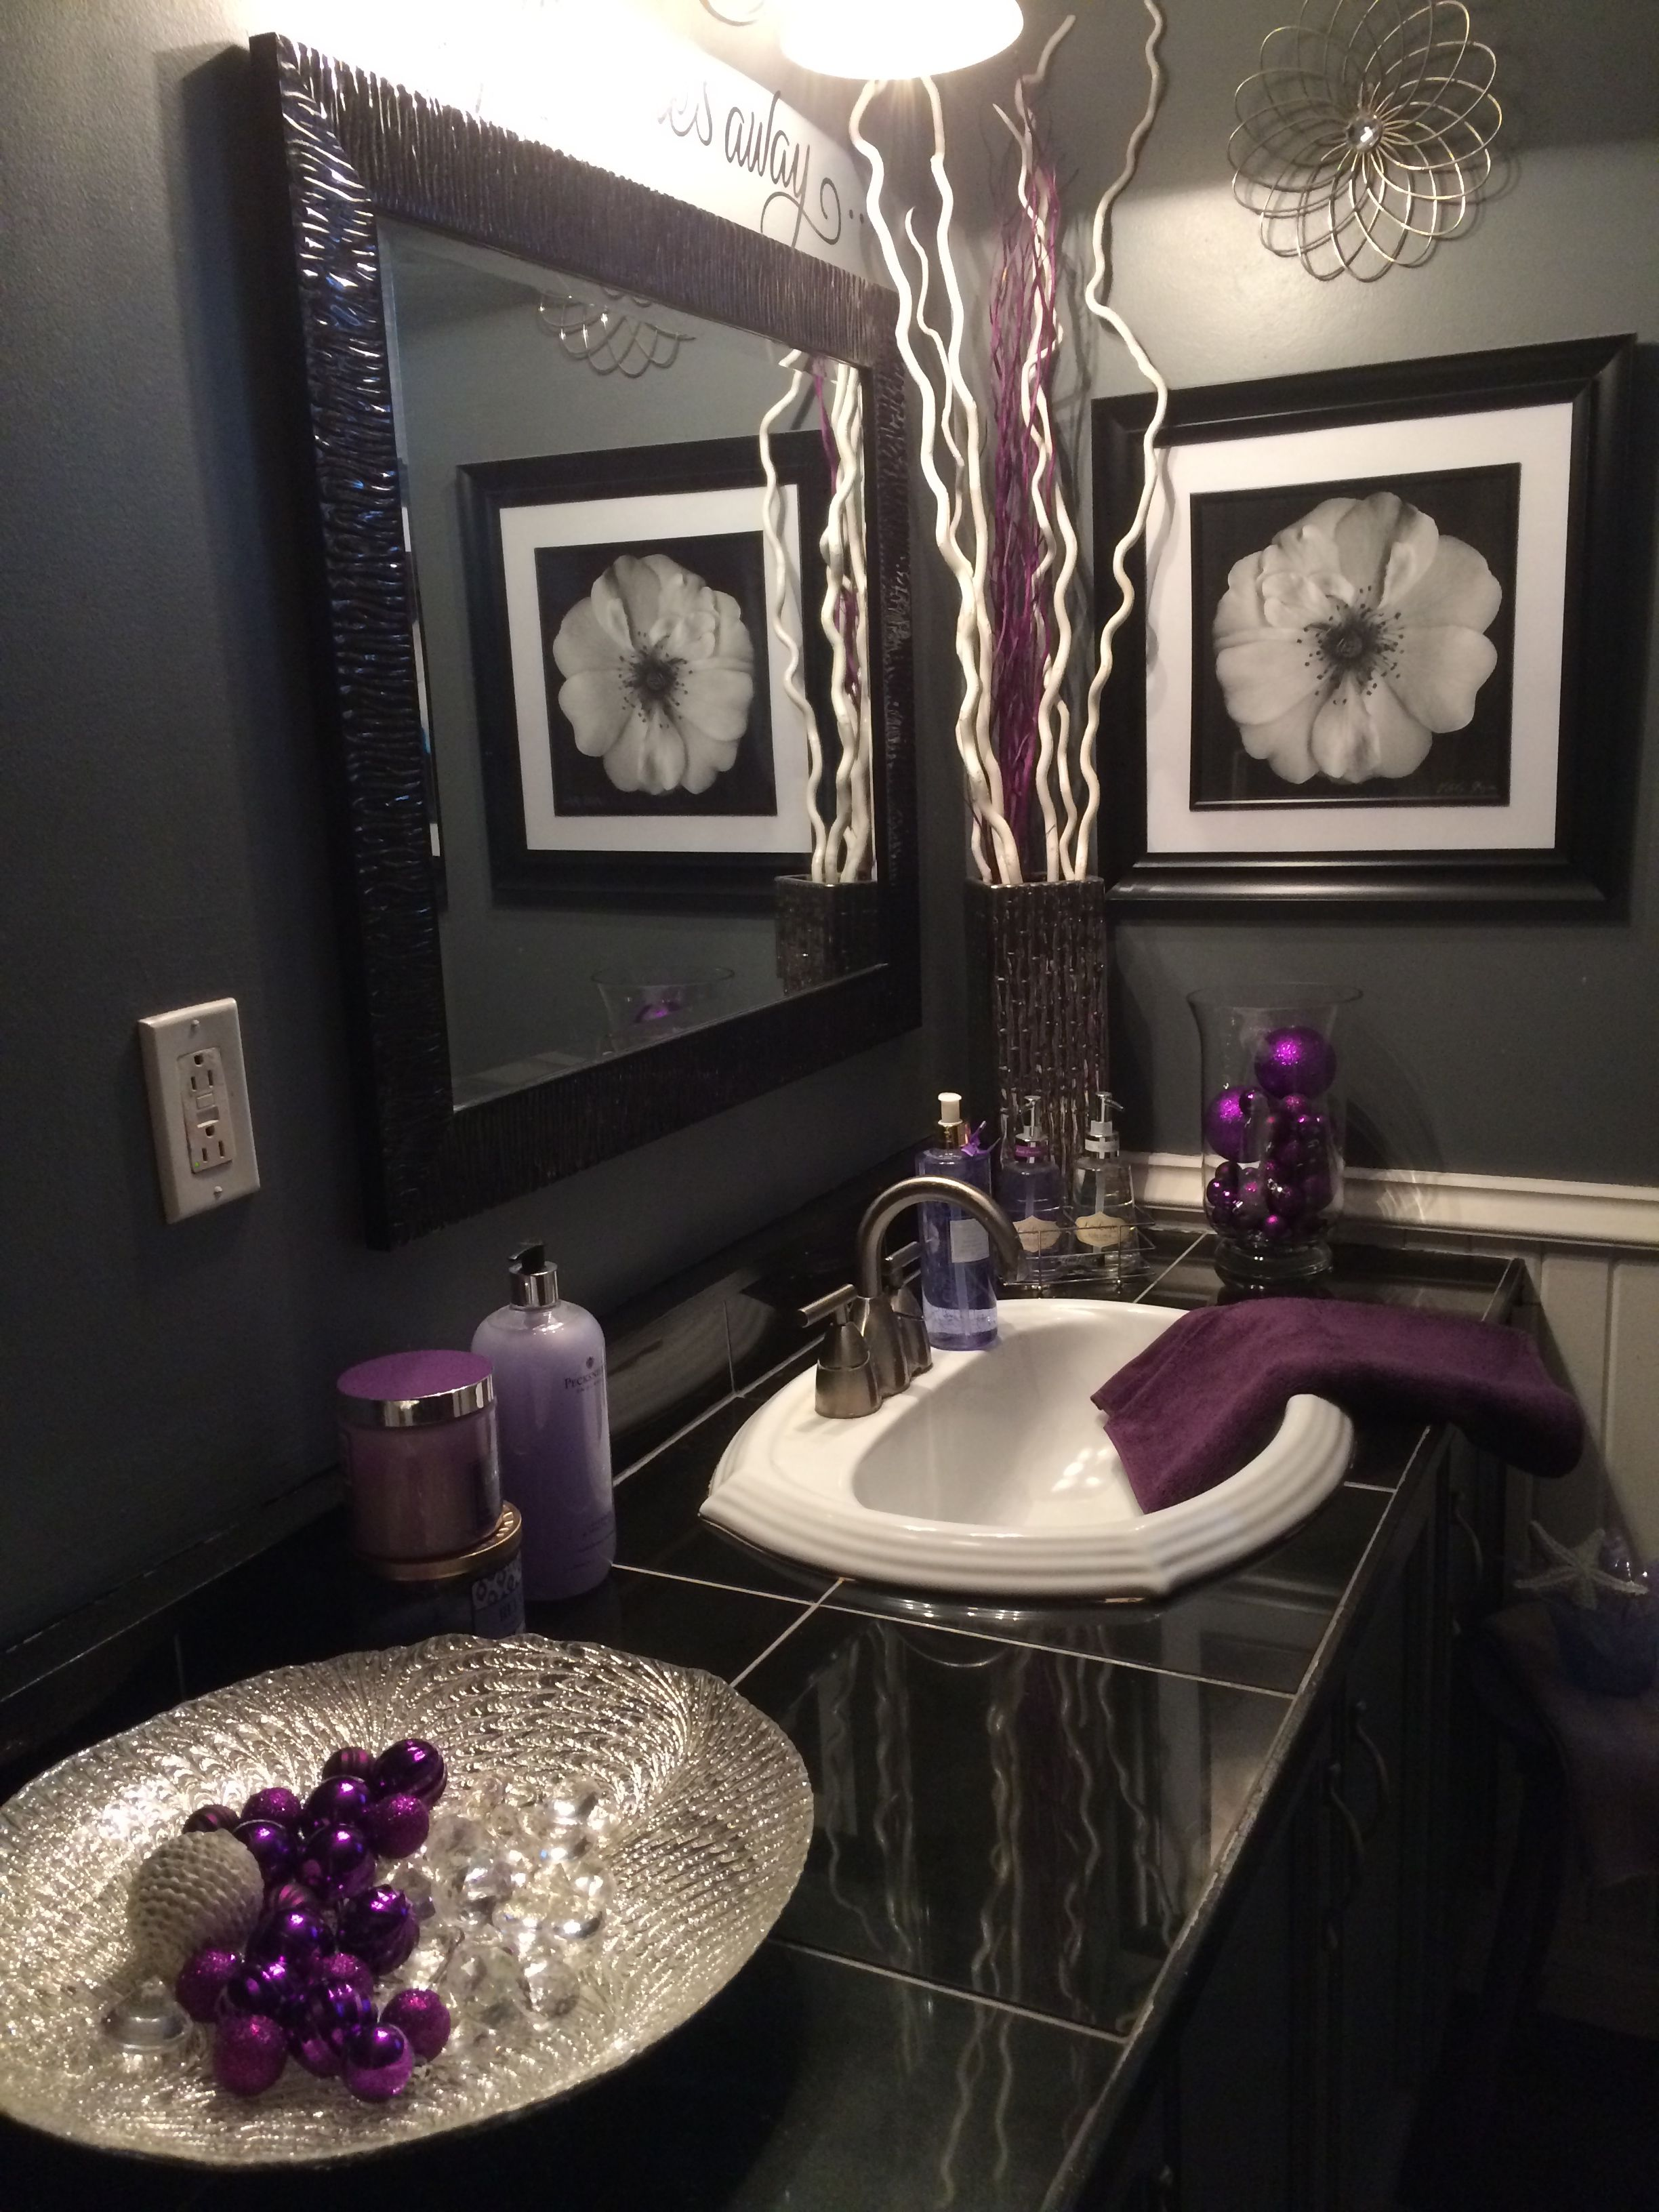 Black And Grey Bathroom With Lavender Accents Purple Bathroom Decor Gray Bathroom Decor Restroom Decor